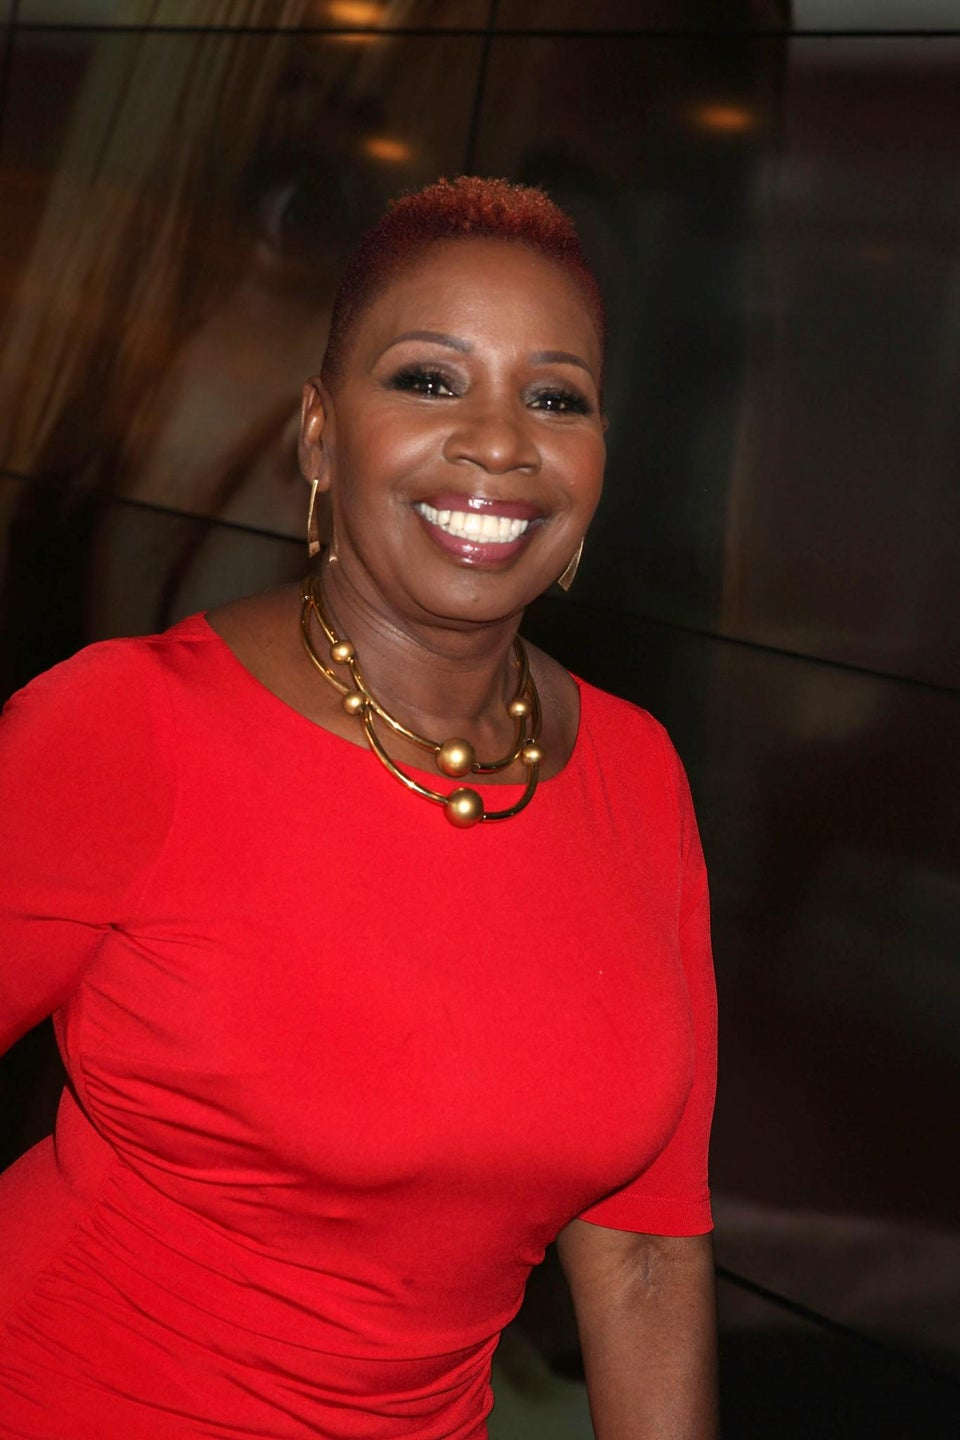 EXCLUSIVE: Iyanla Vanzant Issues a Challenge for #BlackLivesMatter Movement, Discusses the One Guest She Let Down